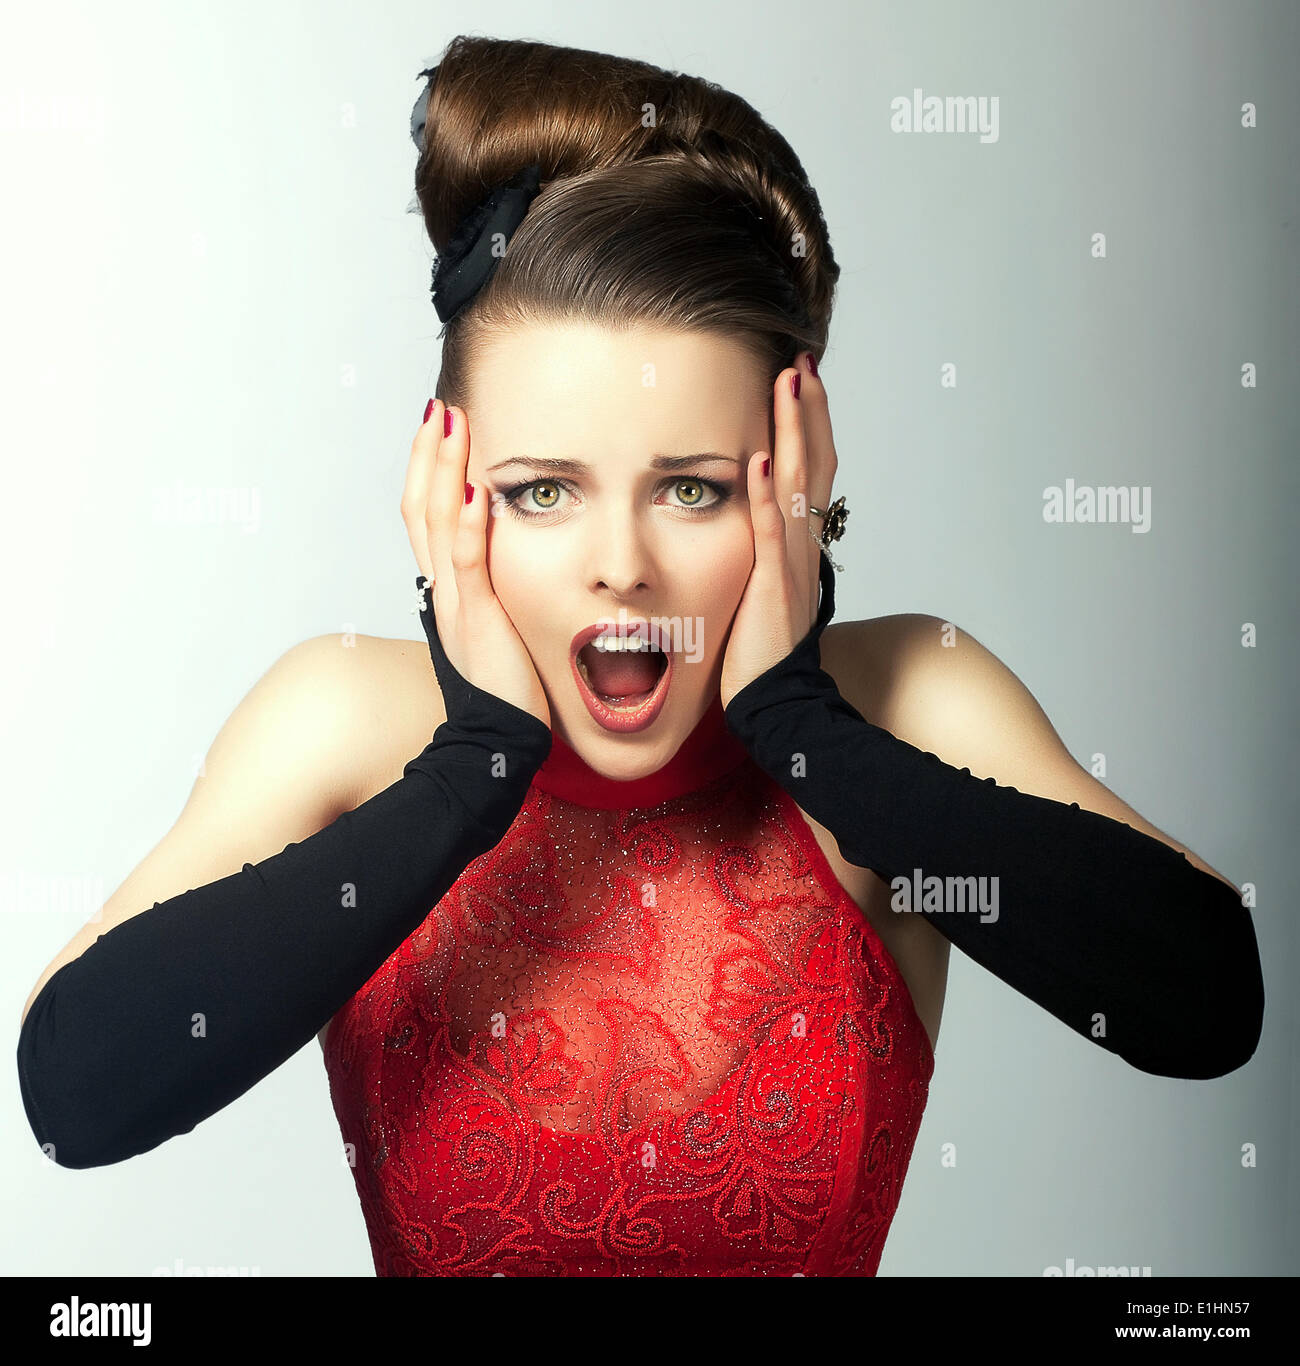 Expressive Emotions. Bemused Woman's Face with Opened Mouth. Stare - Stock Image